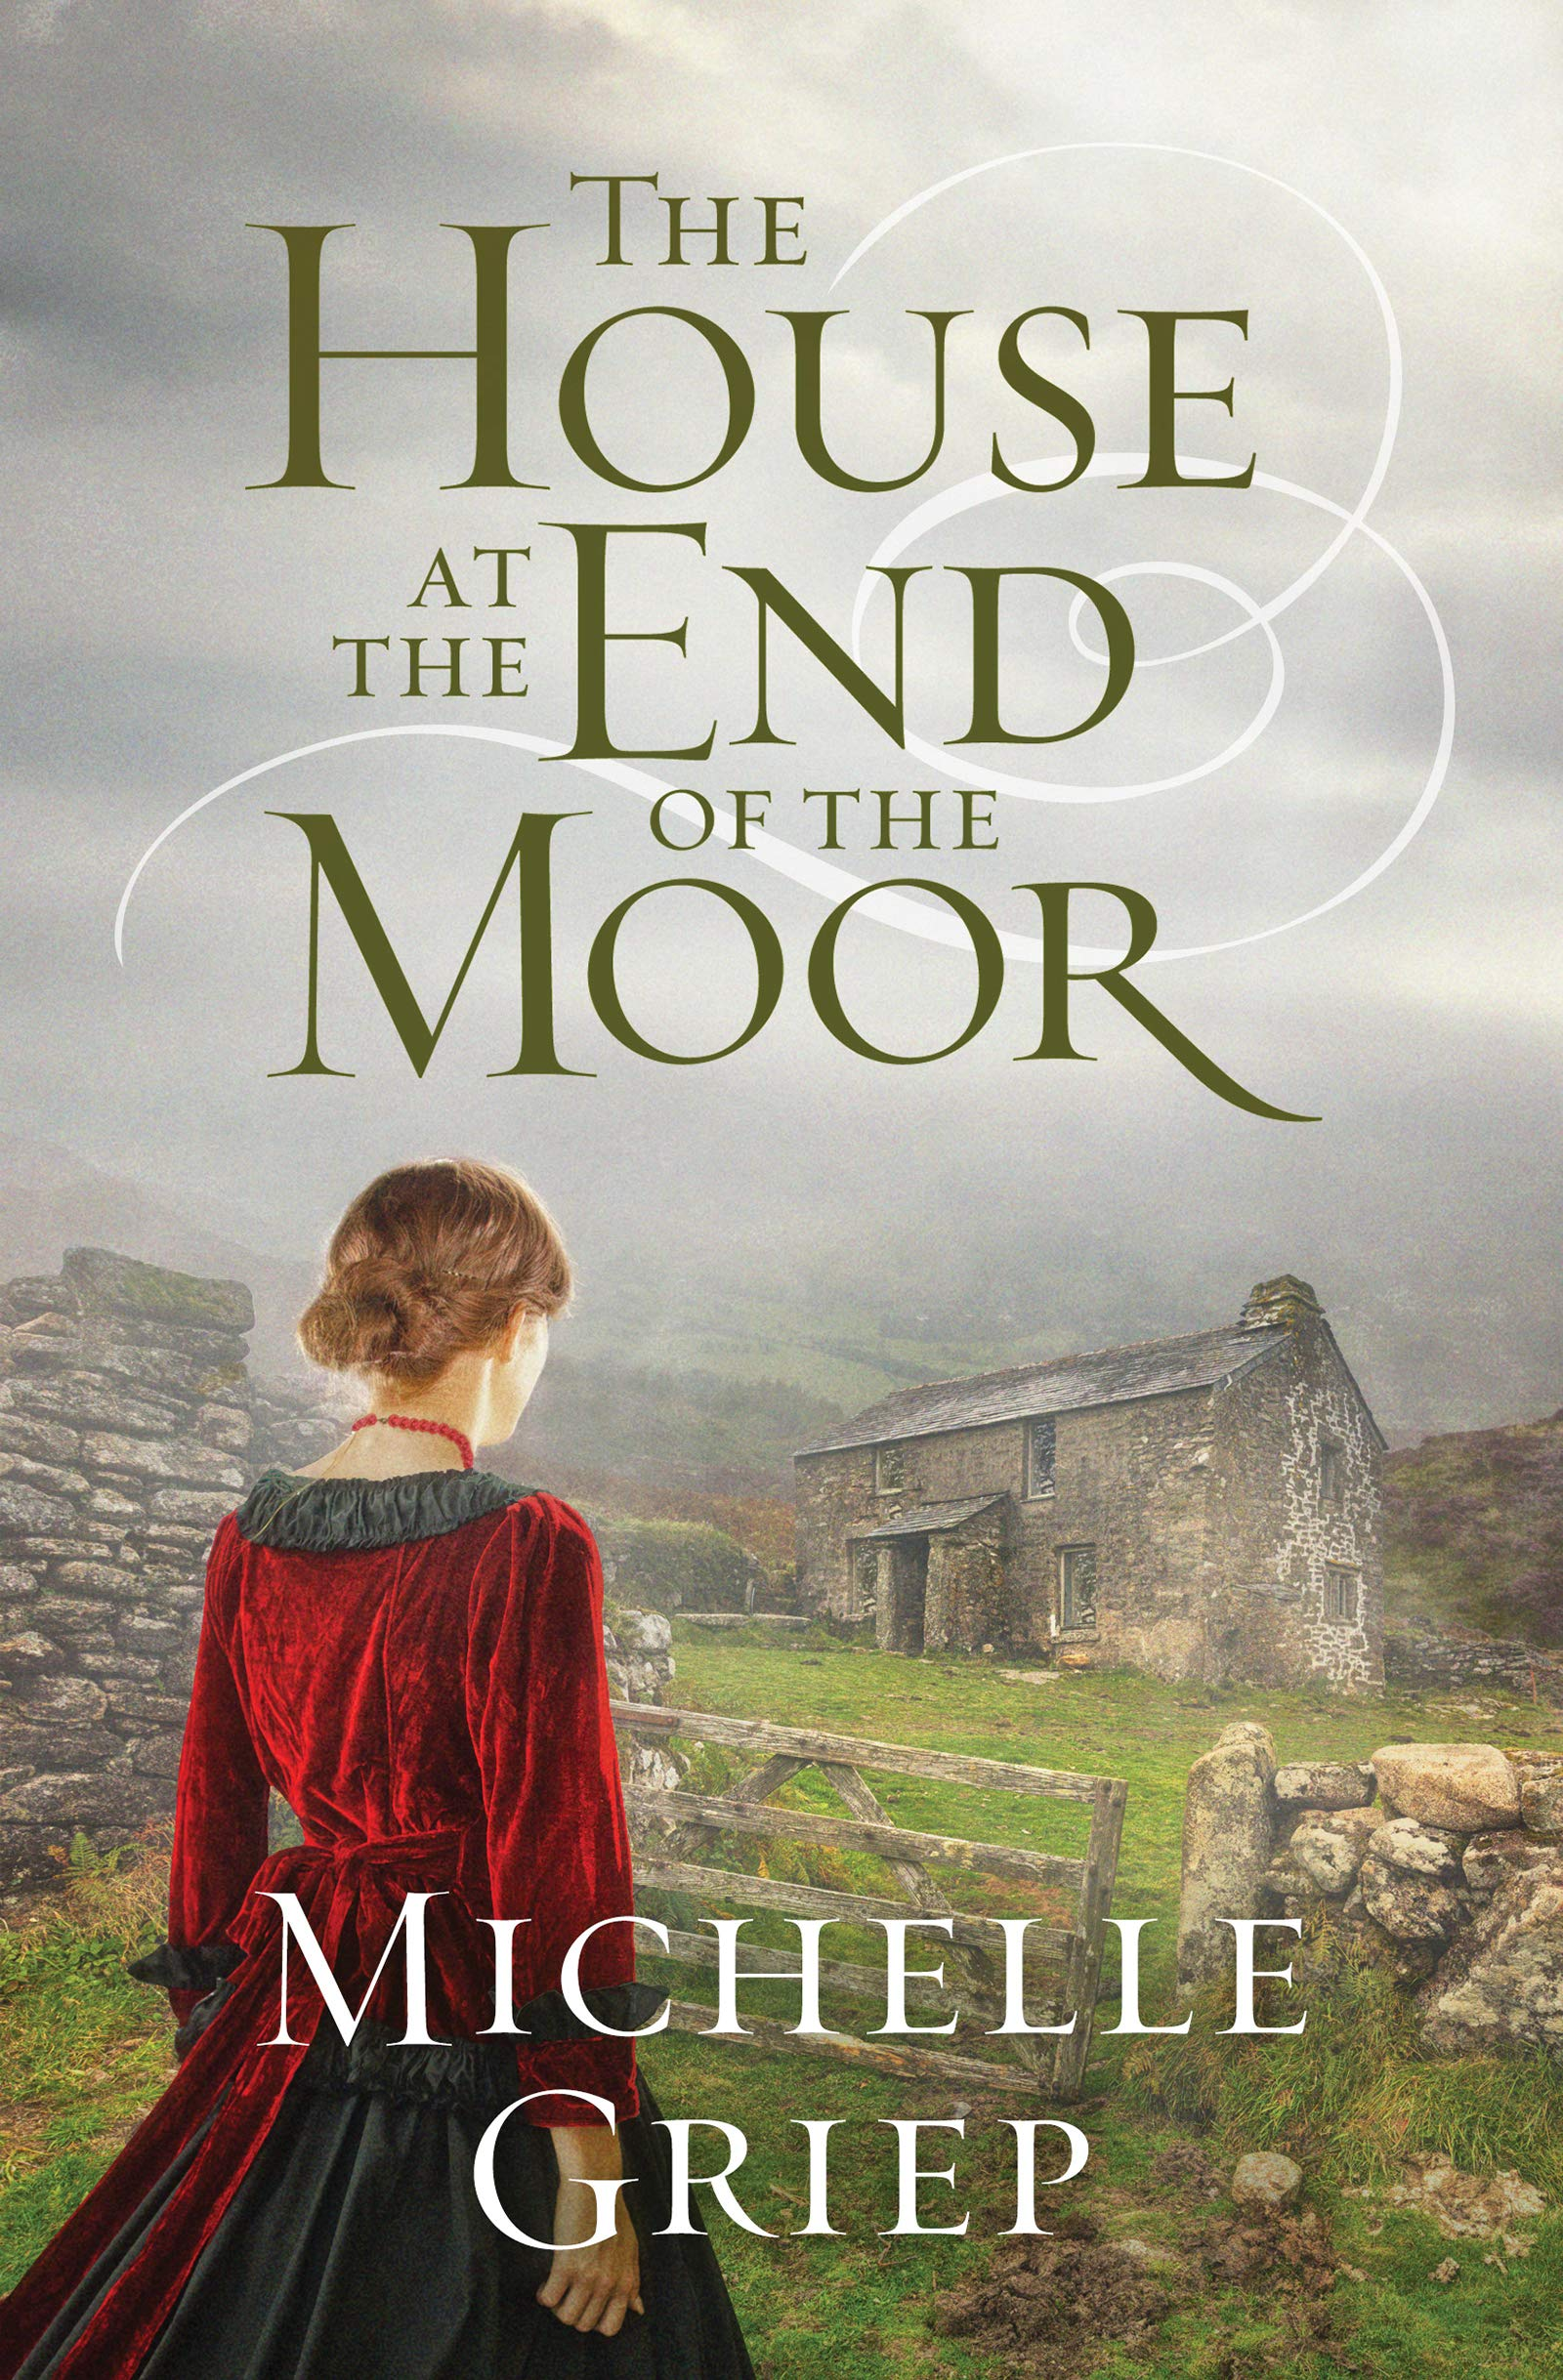 The House at the End of the Moor, by Michelle Griep (2020)